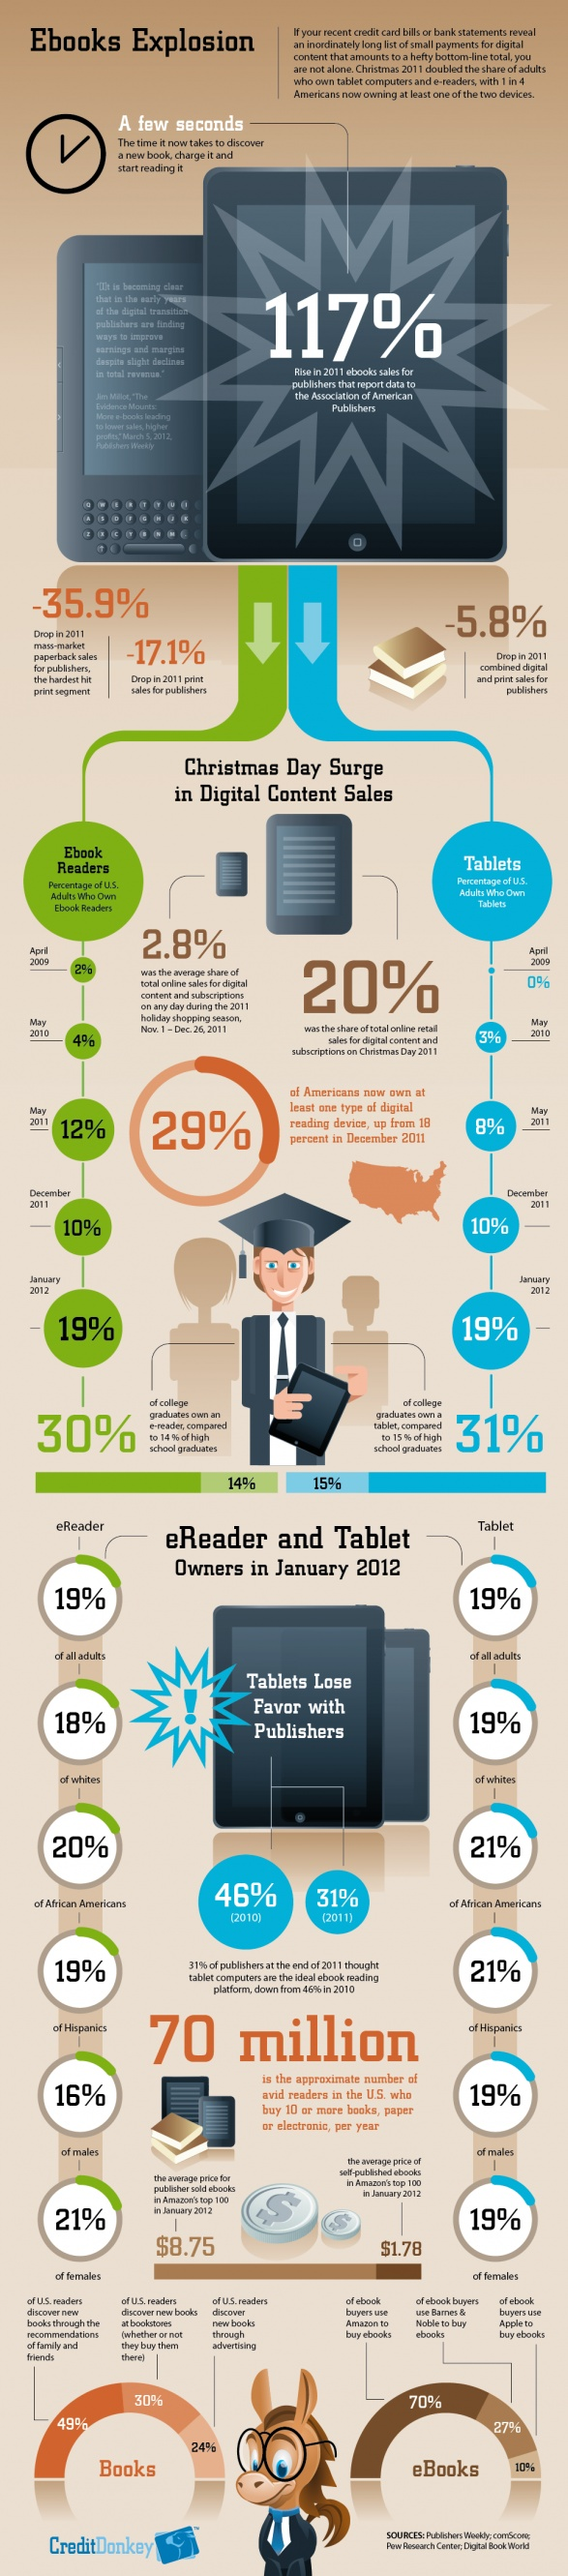 All About Ebooks #infographic